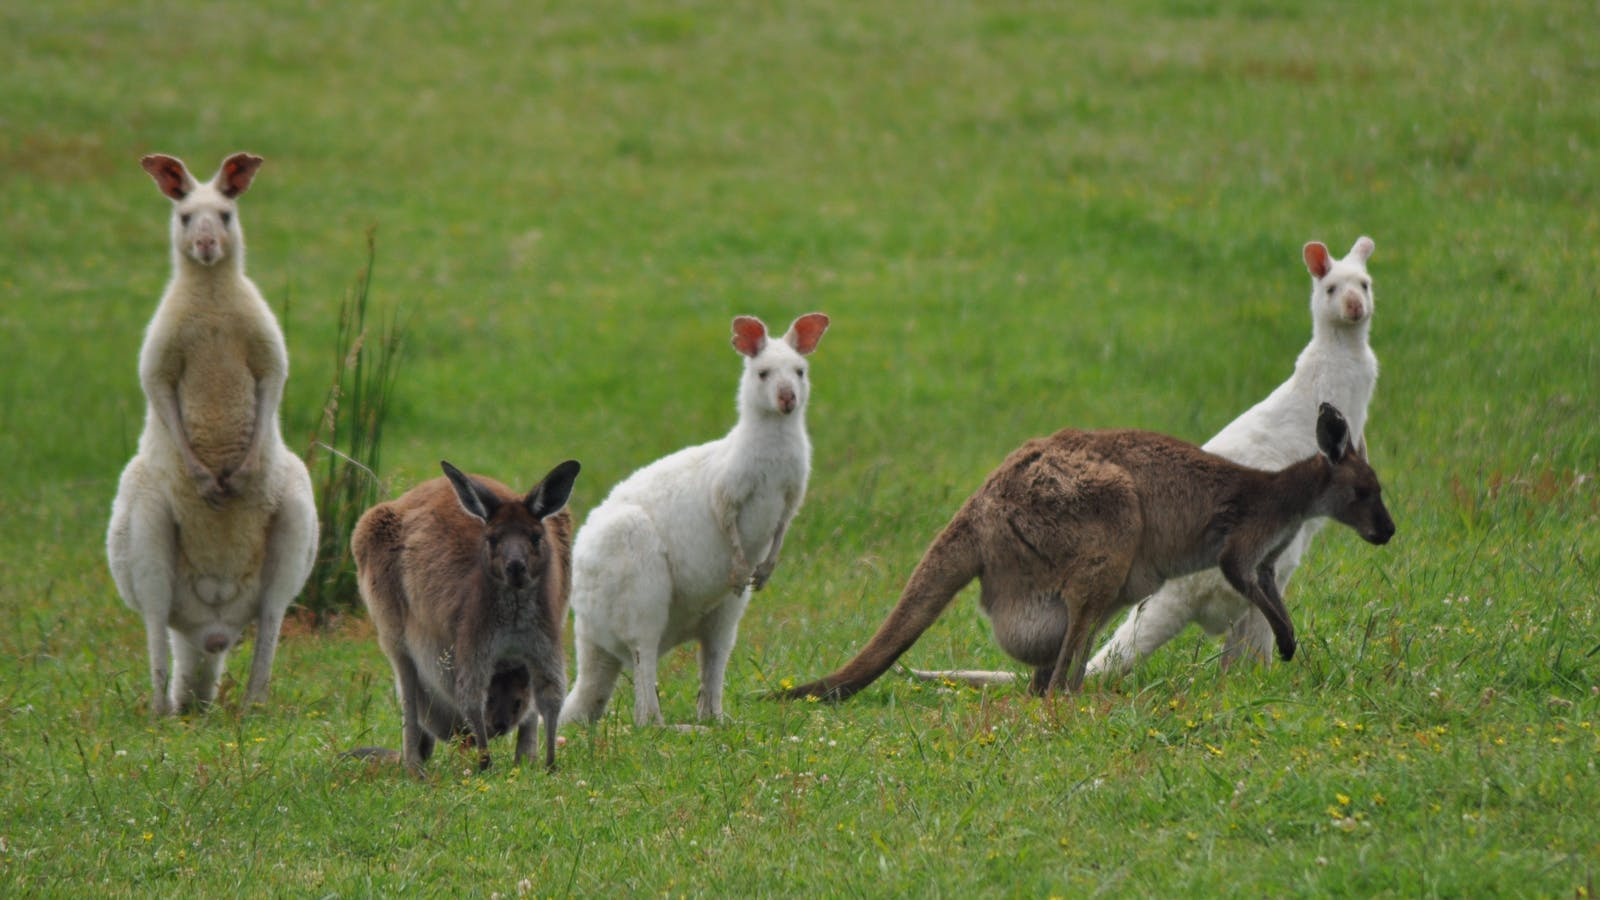 Some of our kangaroos.